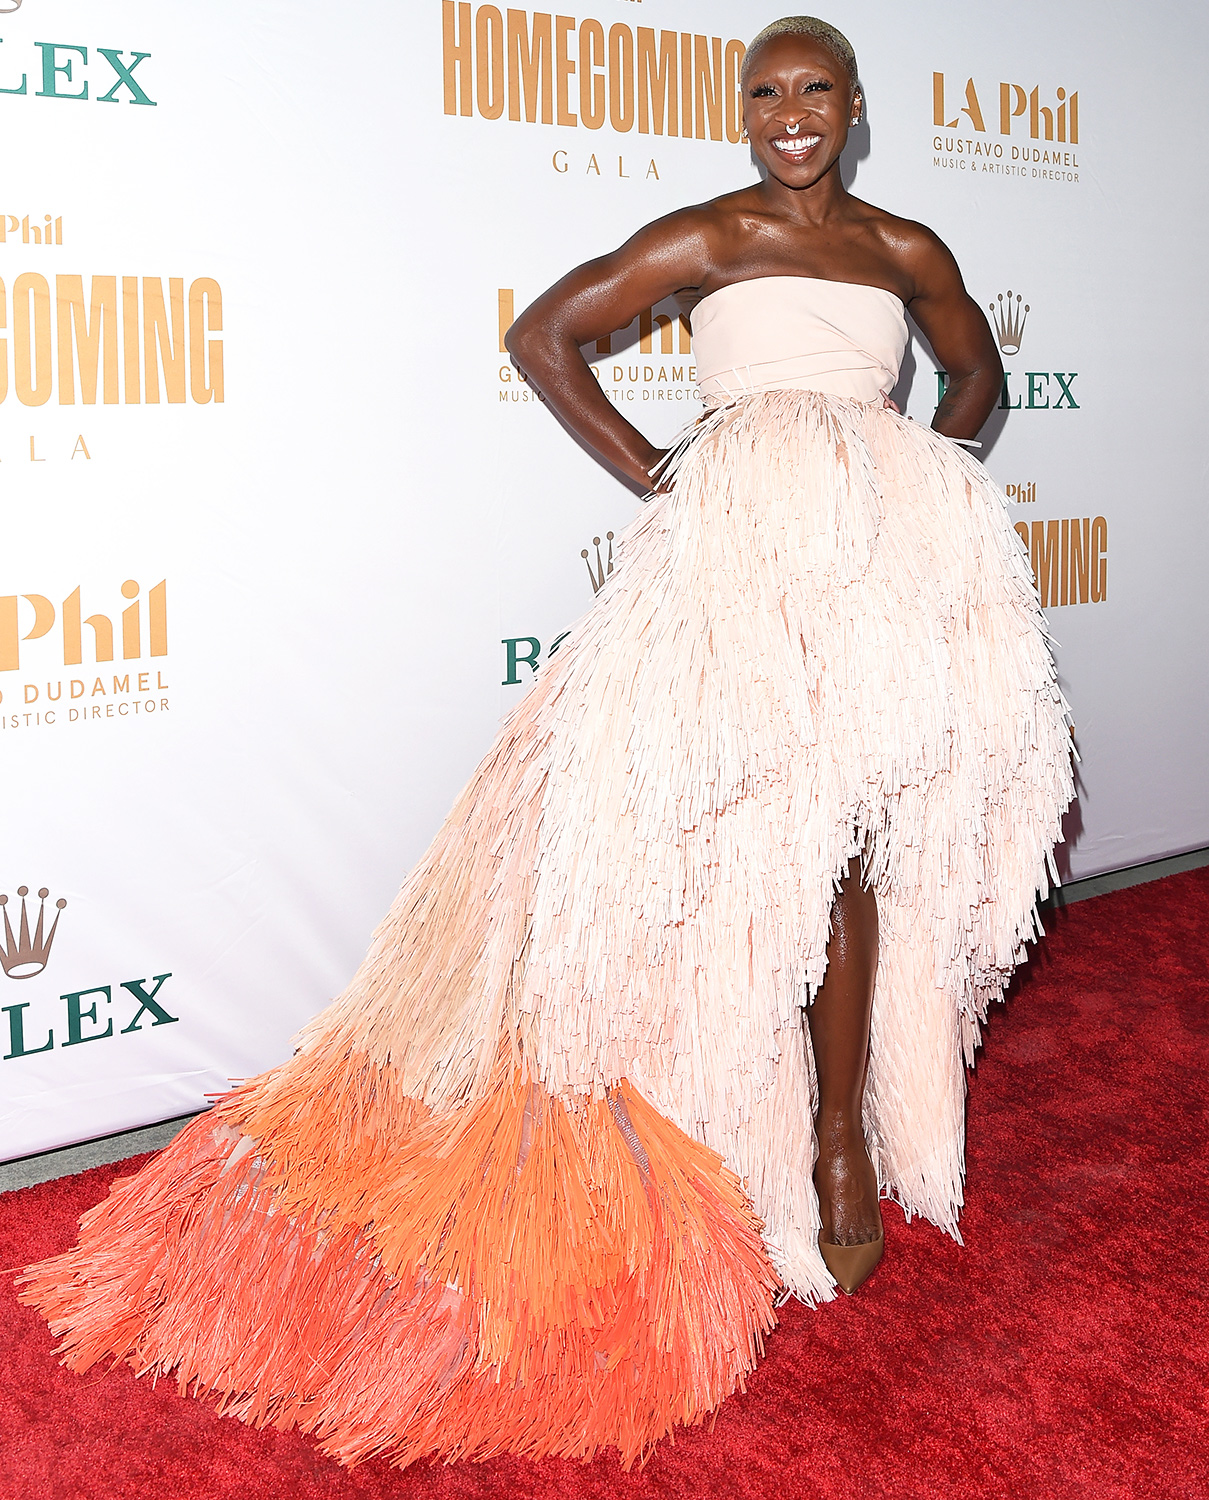 Cynthia Erivo attends the Los Angeles Philharmonic Homecoming Concert & Gala at Walt Disney Concert Hall on October 09, 2021 in Los Angeles, California.